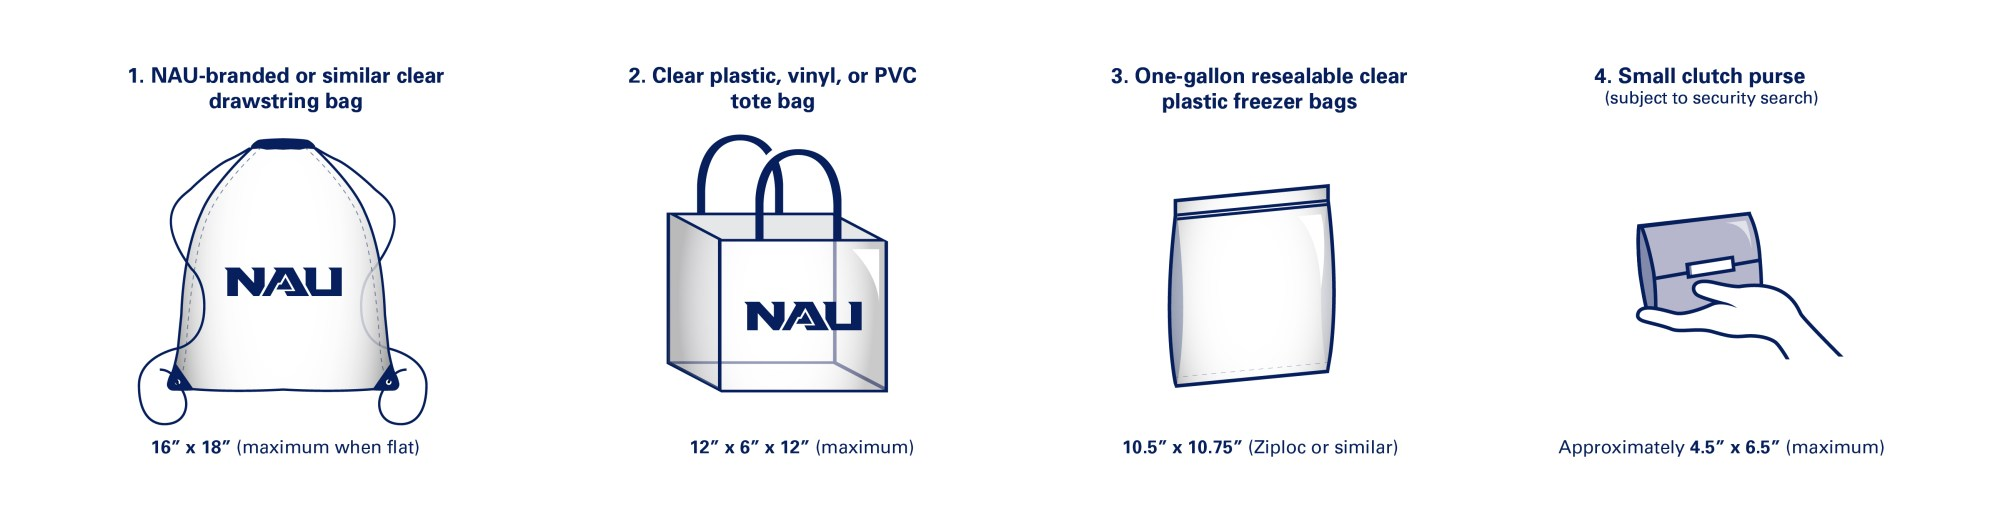 hight resolution of nau branded or similar clear drawstring bags no larger than 16 x